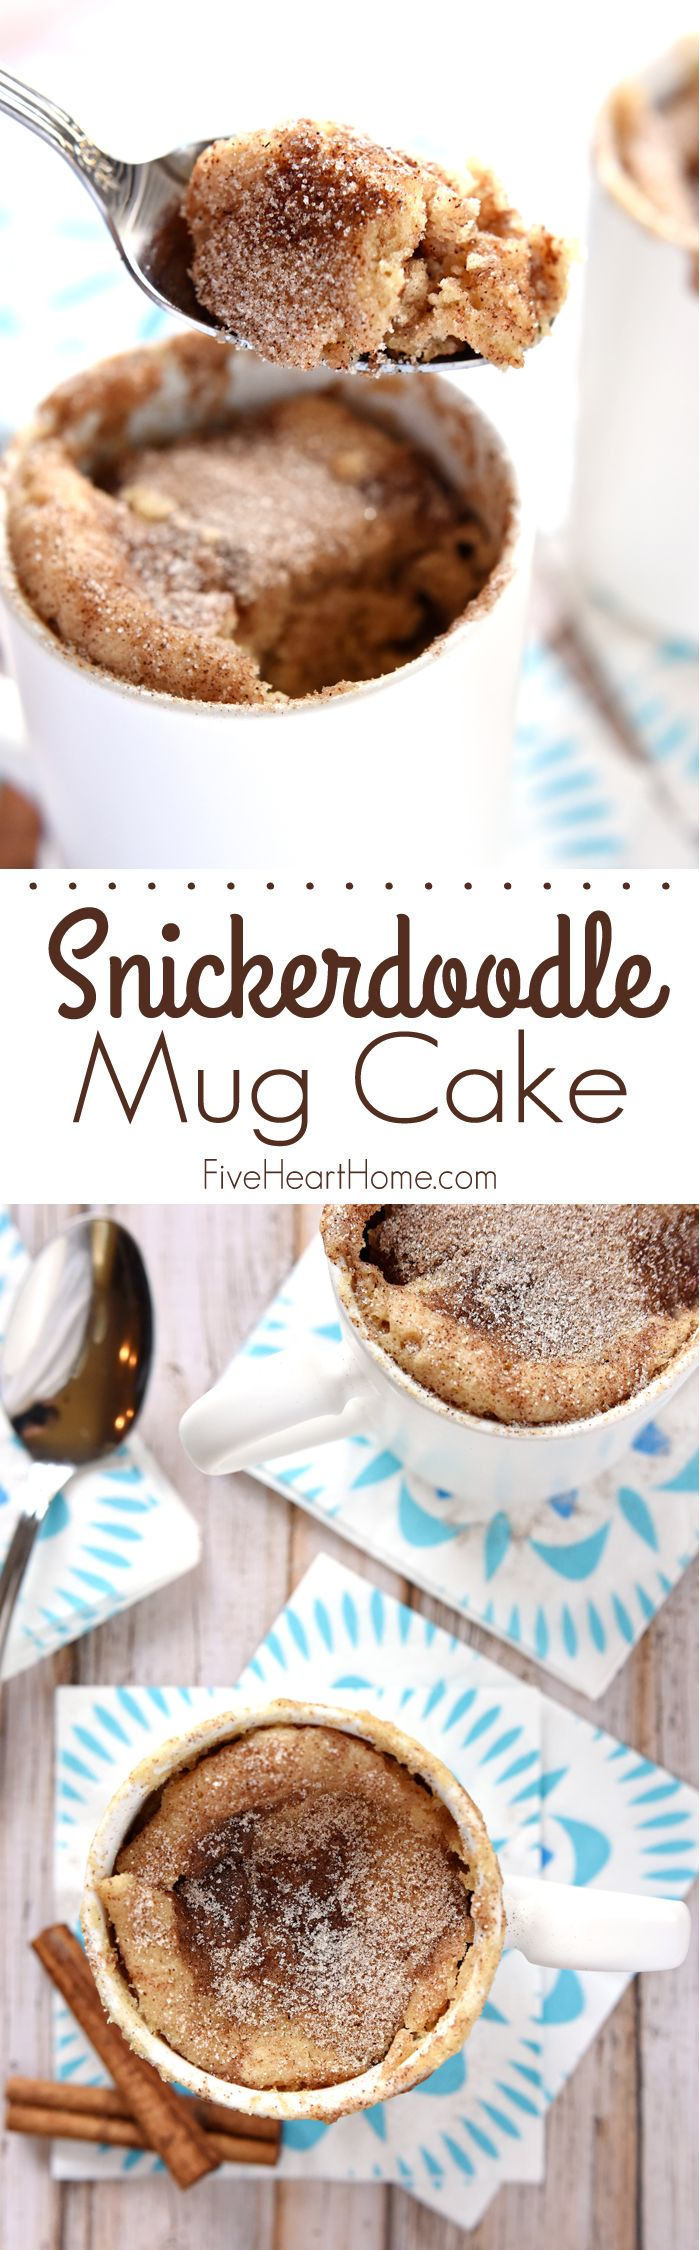 Snickerdoodle Mug Cake by Five Heart Home